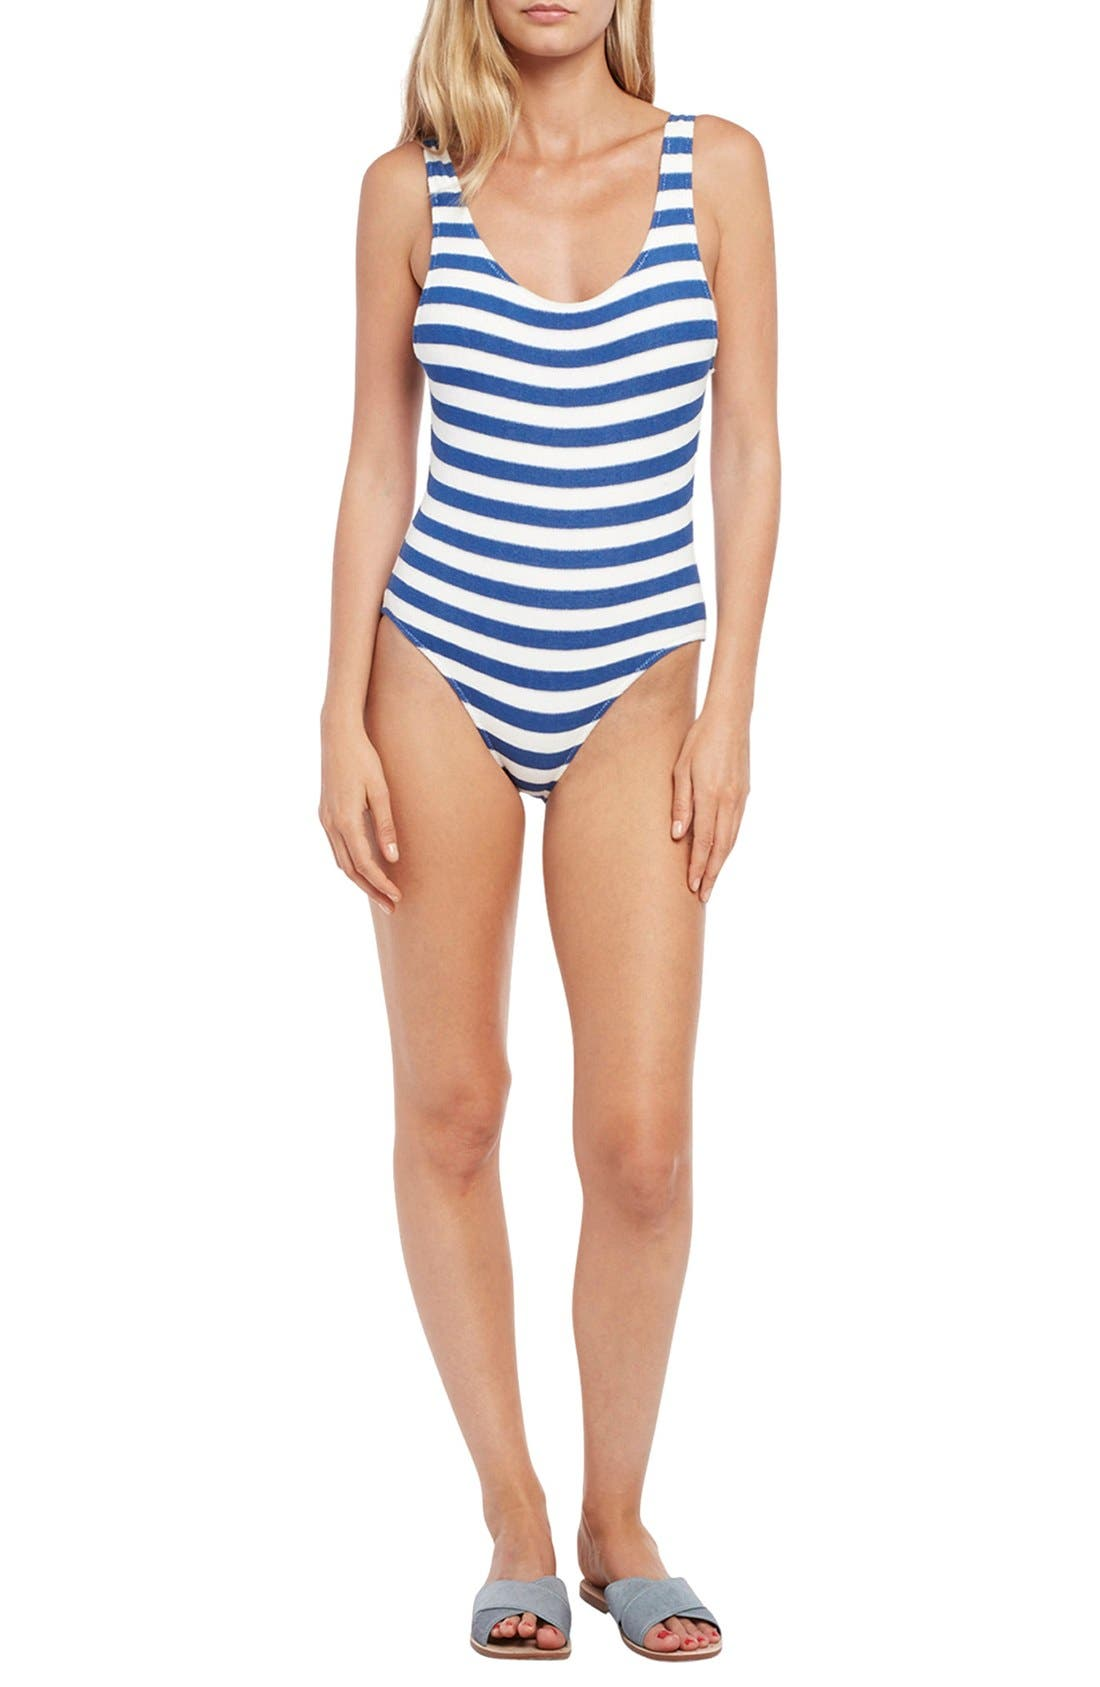 'The Anne-Marie' Scoop Back One-Piece Swimsuit,                             Main thumbnail 1, color,                             400